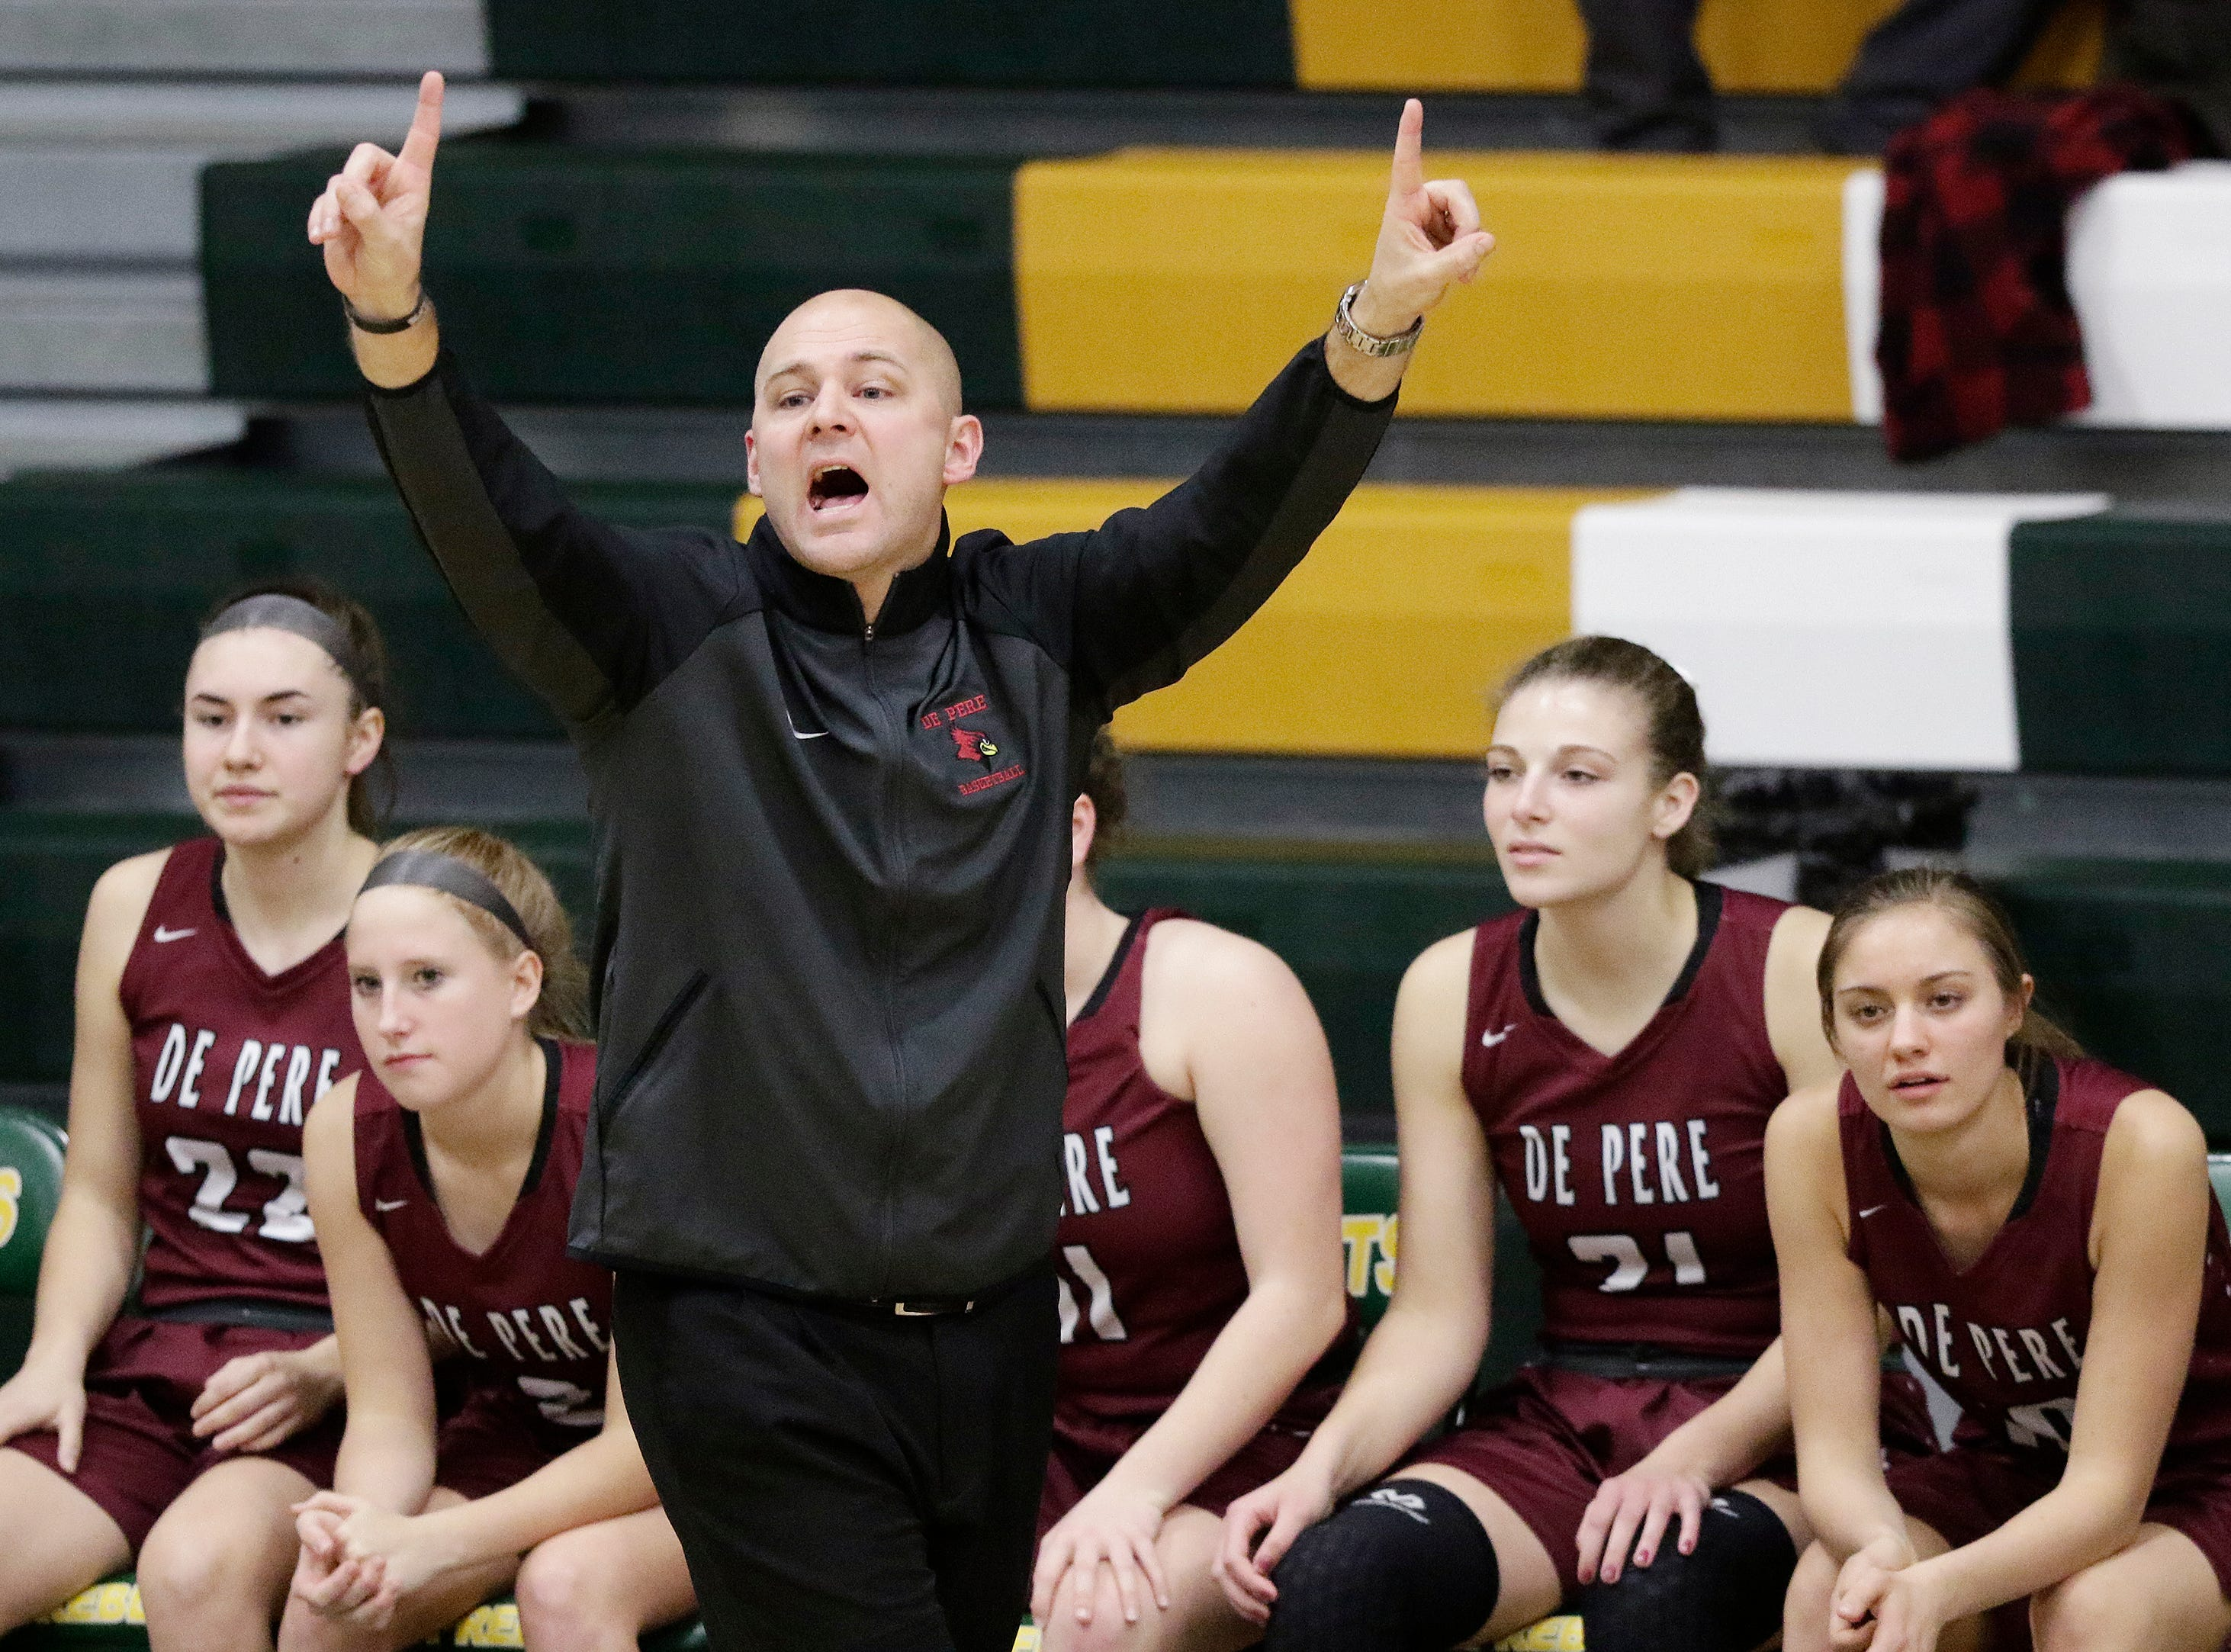 De Pere head coach Jeremy Boileau reacts in a girls basketball game against Green Bay Preble at Preble high school on Tuesday, January 8, 2019 in Green Bay, Wis.